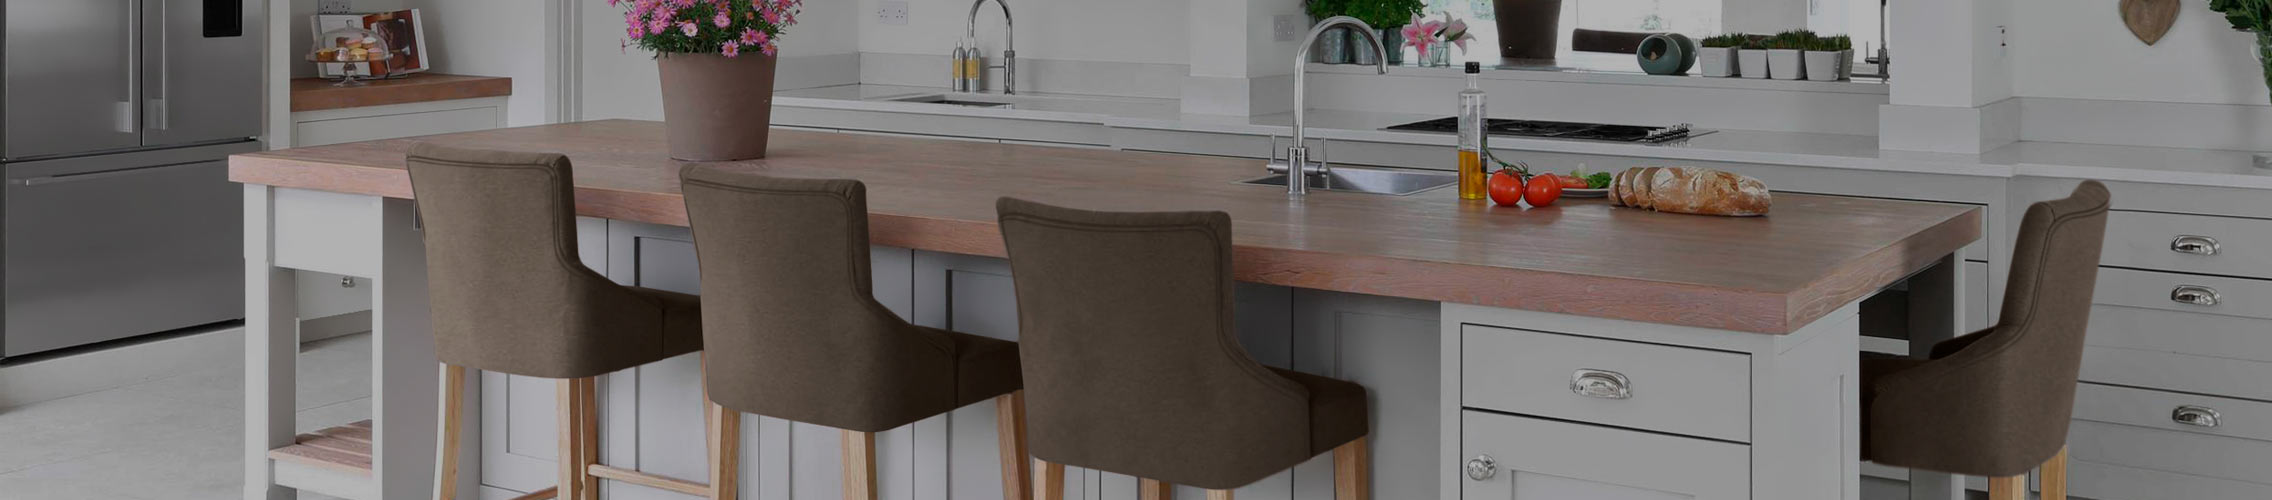 Brown Breakfast Bar Stools